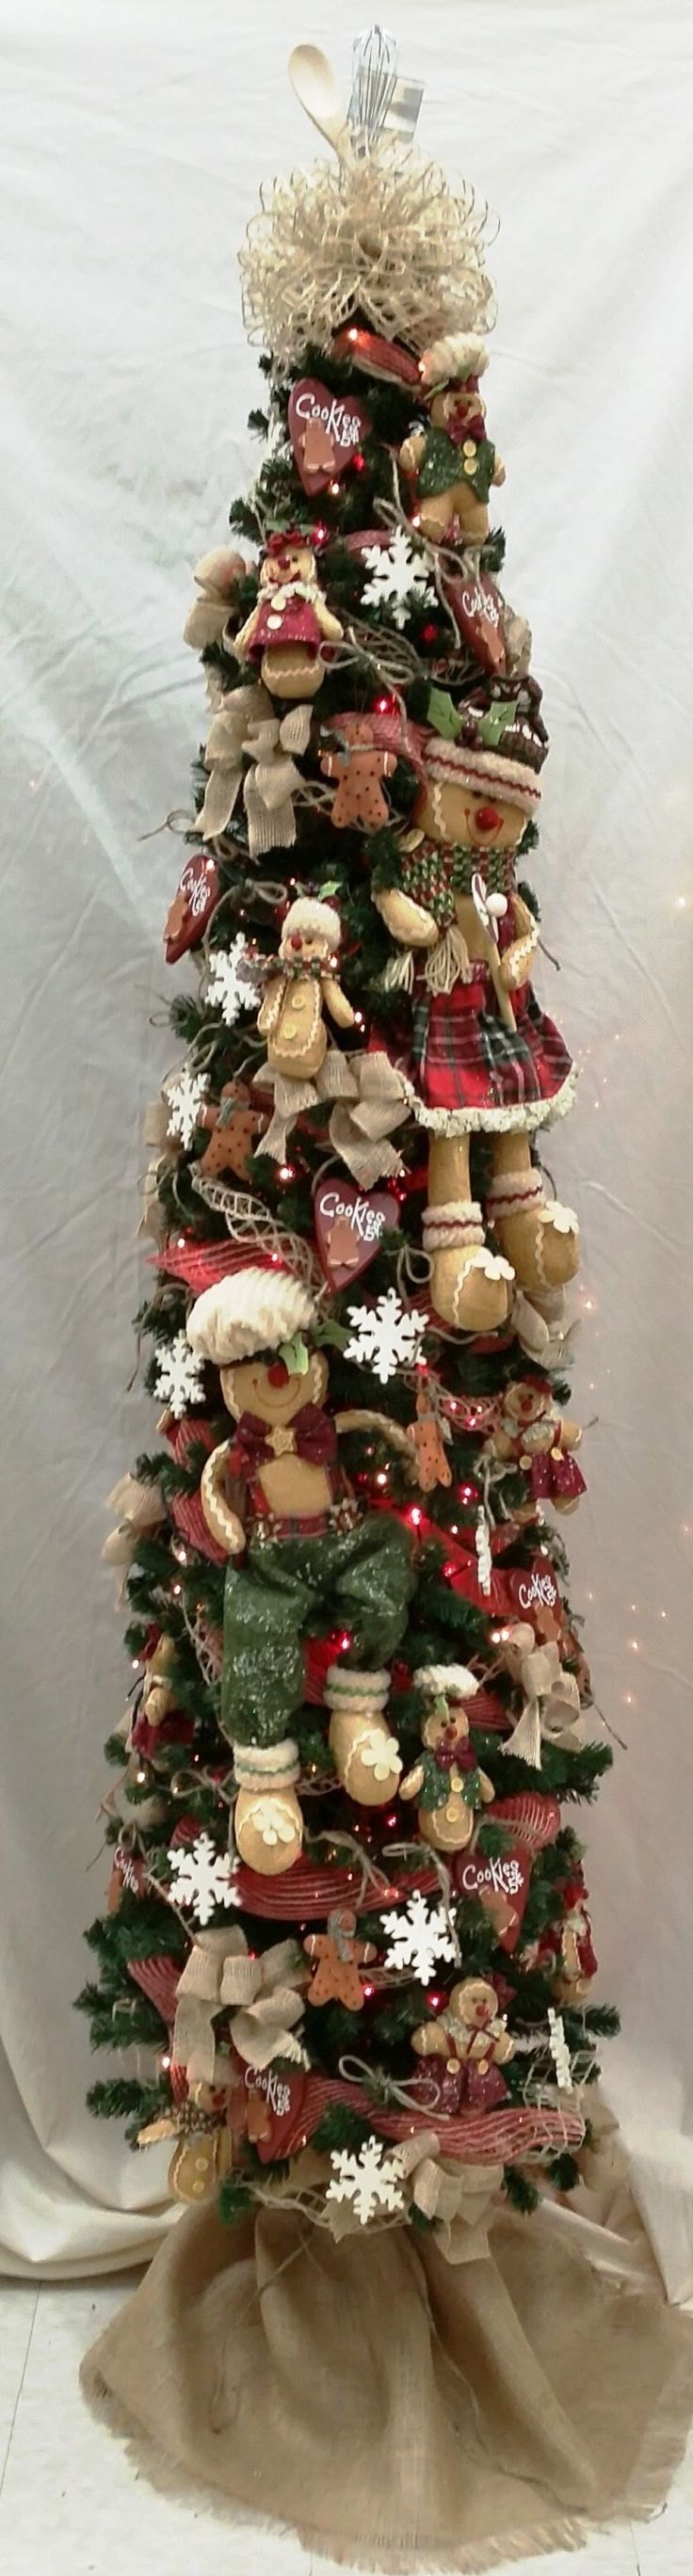 2014 Primitive Gingerbread Cookie Tree! This beautiful tree showcases  adorable Gingerbread men and is finished